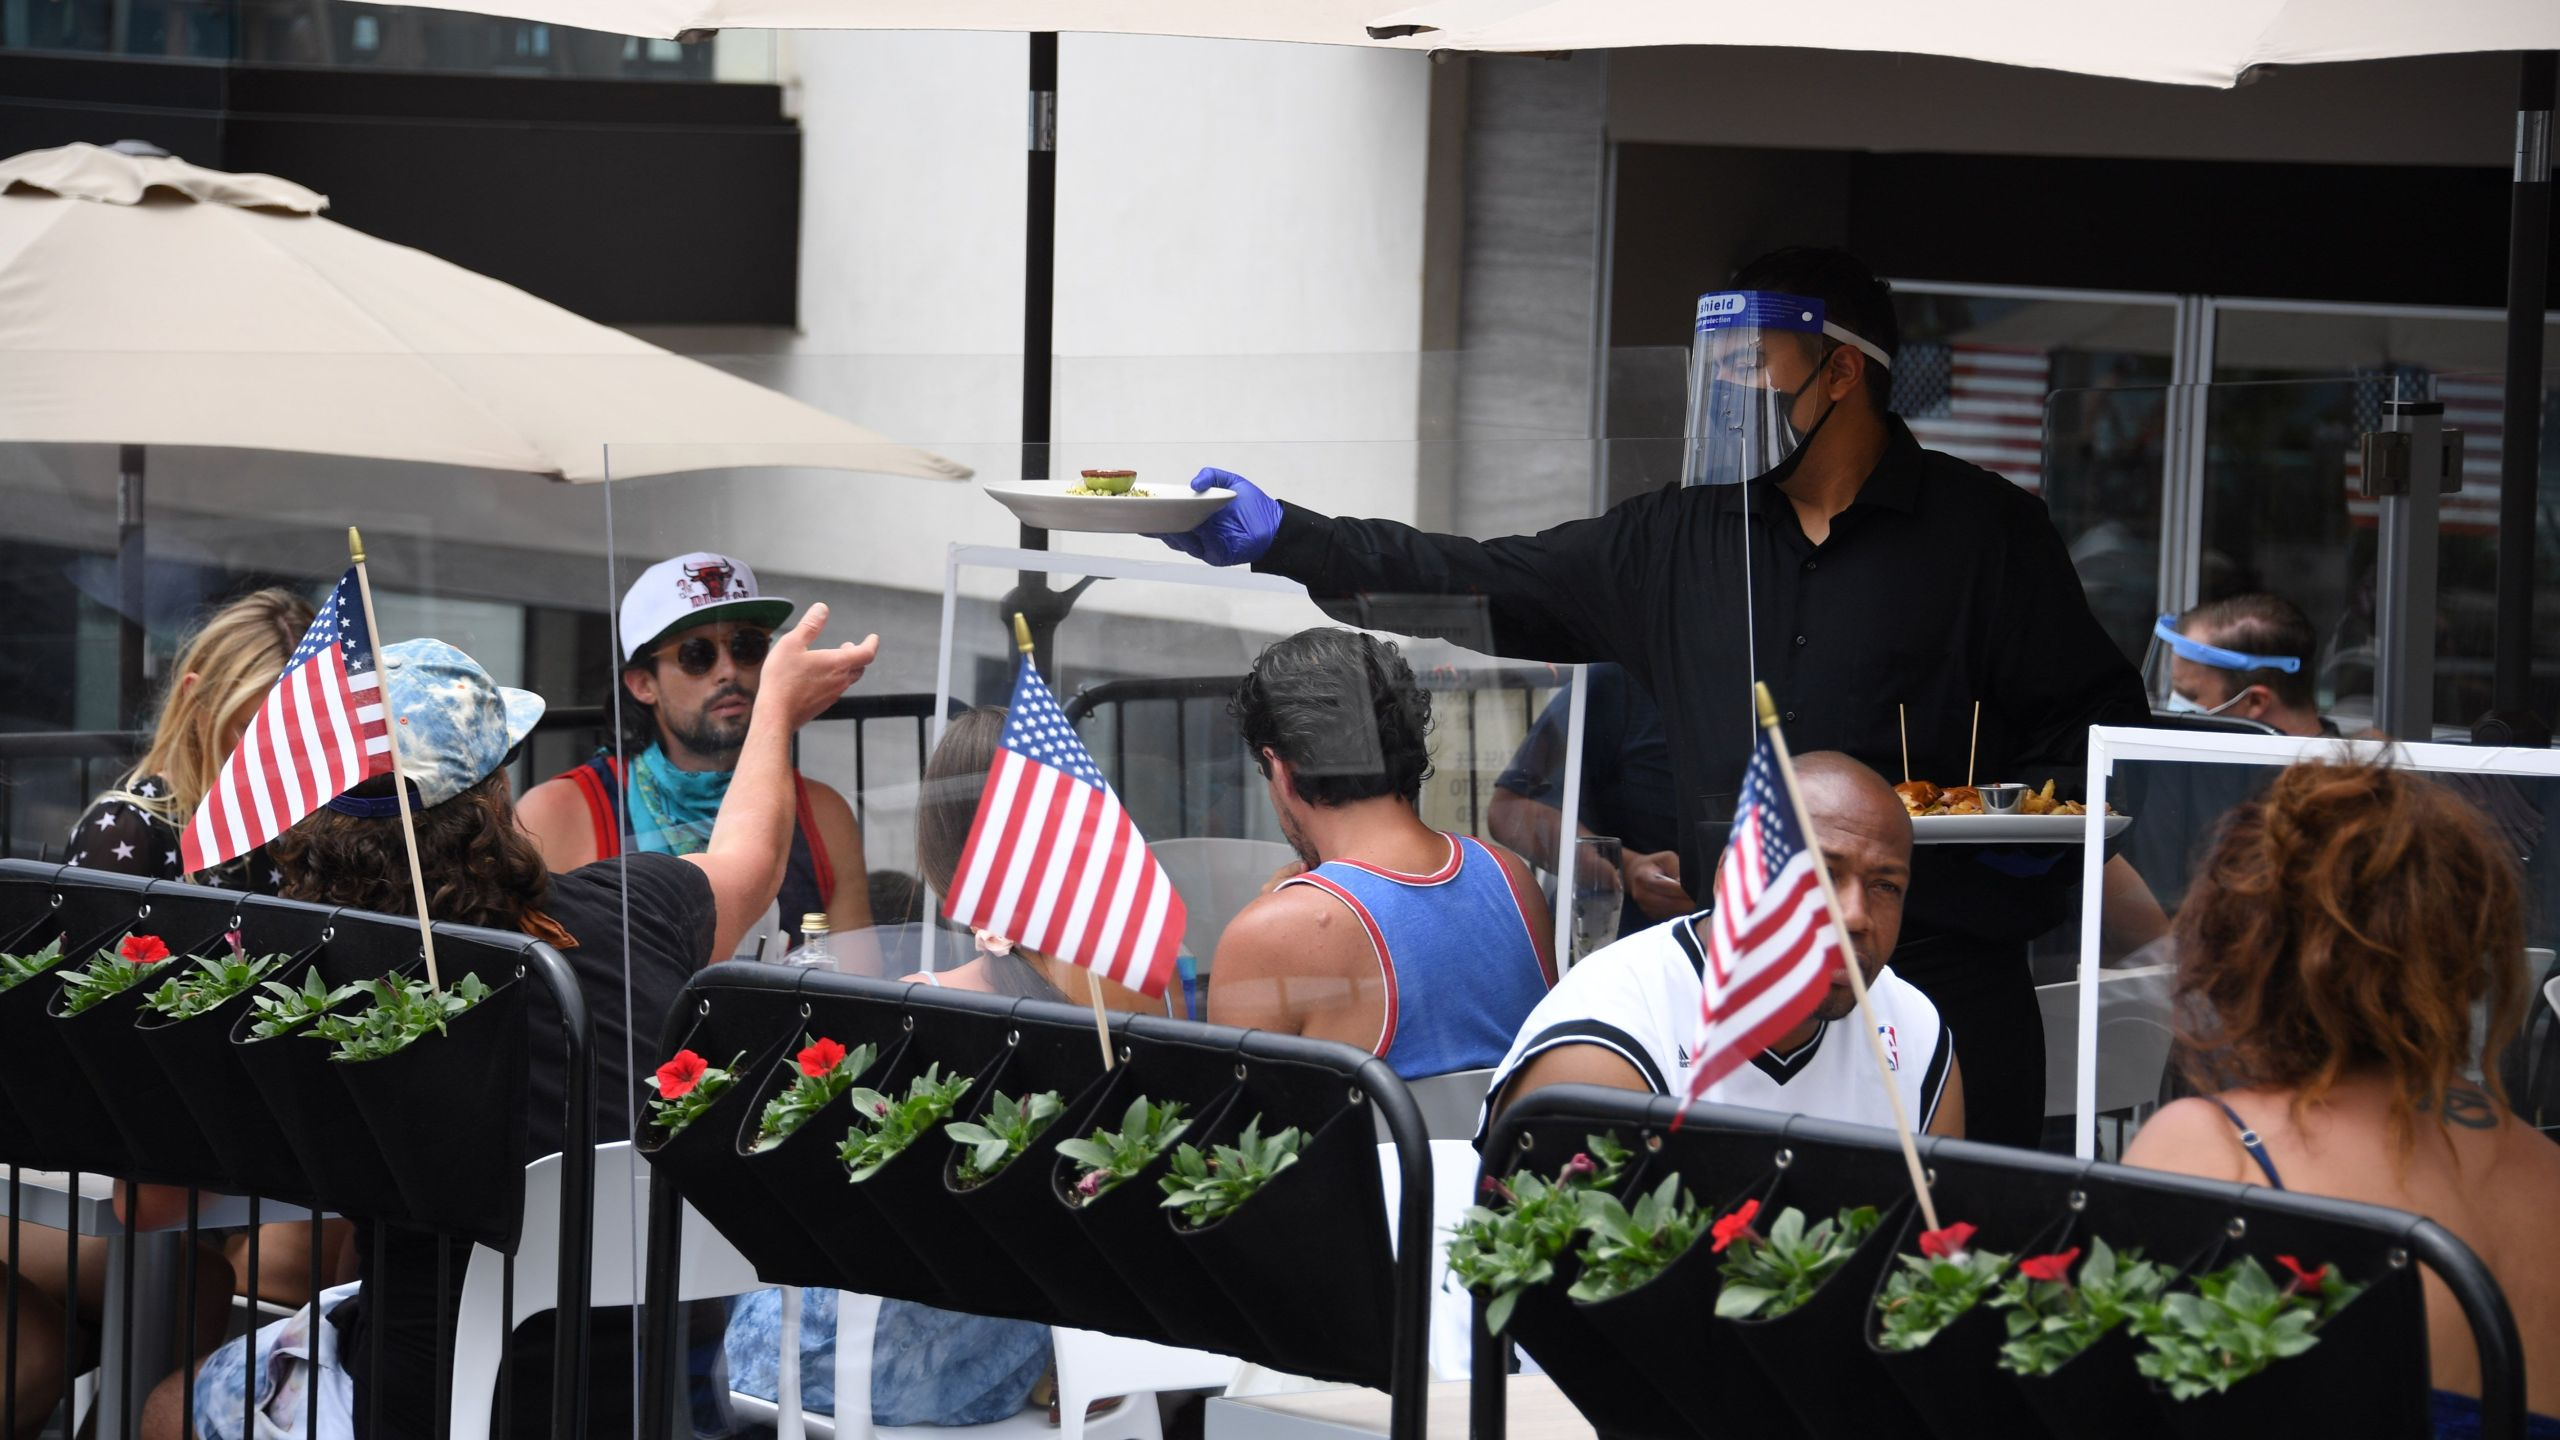 A waiter wearing a face shield serves food on a restaurant patio in Manhattan Beach on July 4, 2020. (ROBYN BECK/AFP via Getty Images)